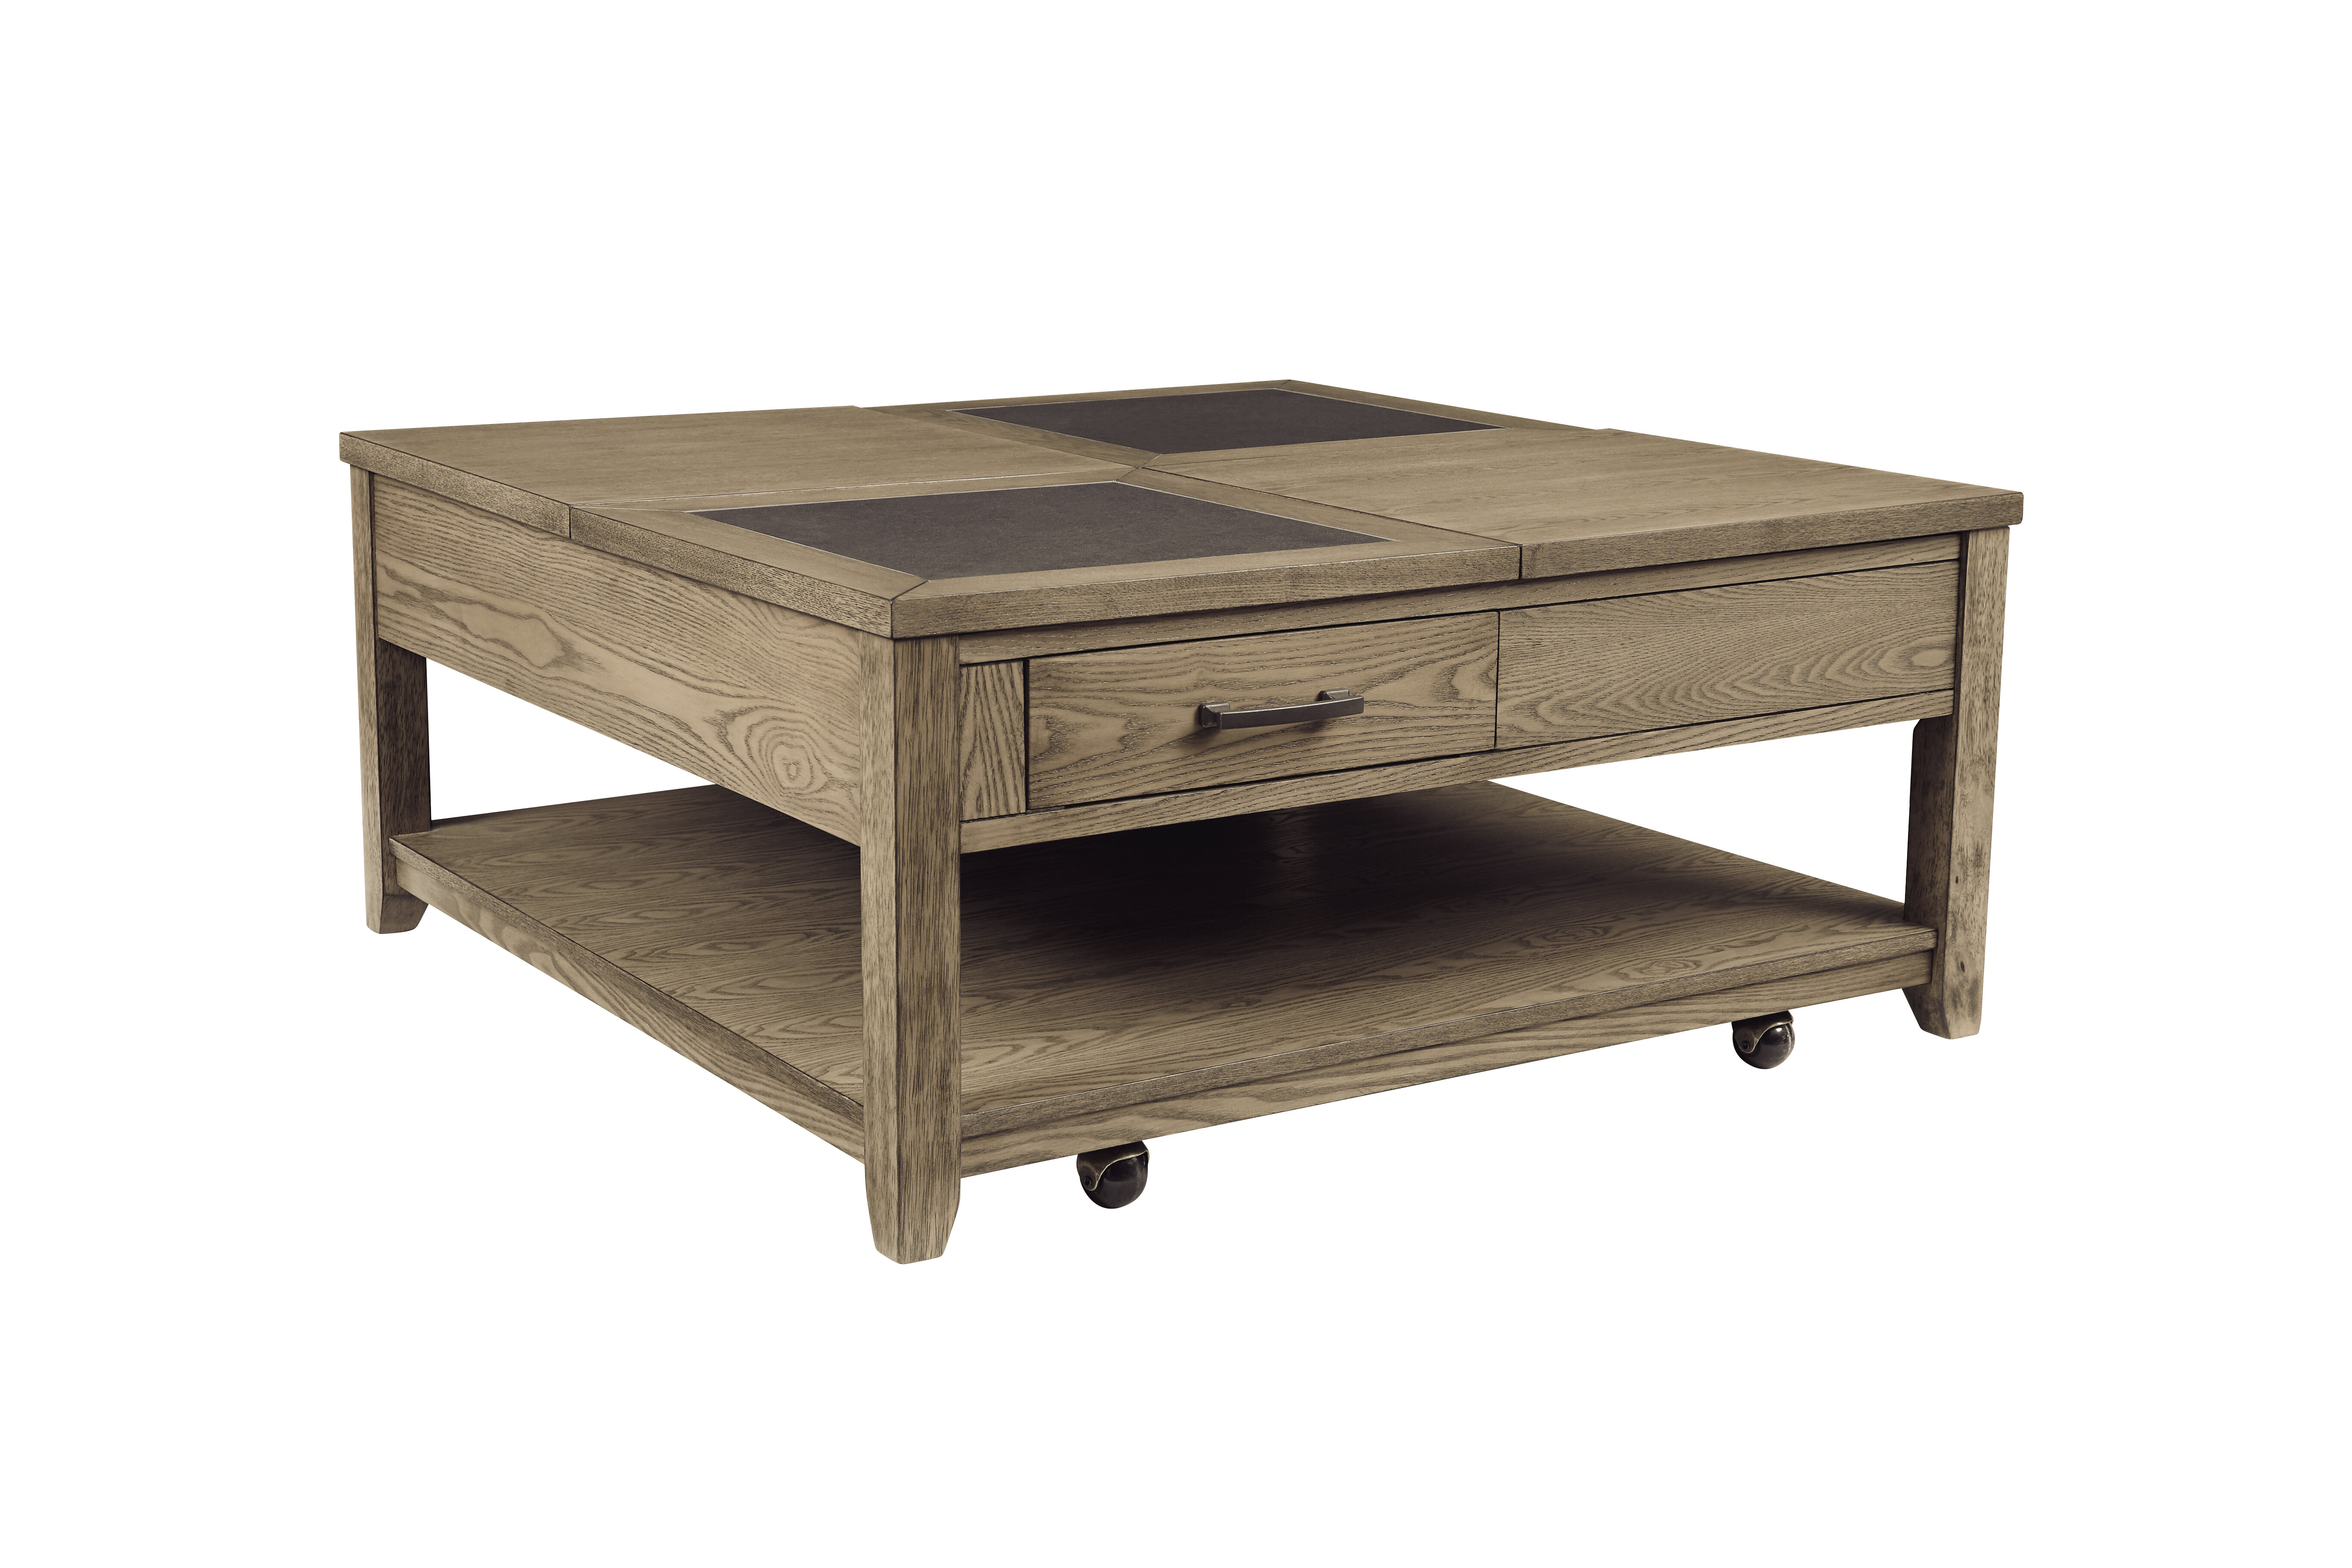 Lift Top Square Coffee Tables You Ll Love In 2021 Wayfair Ca